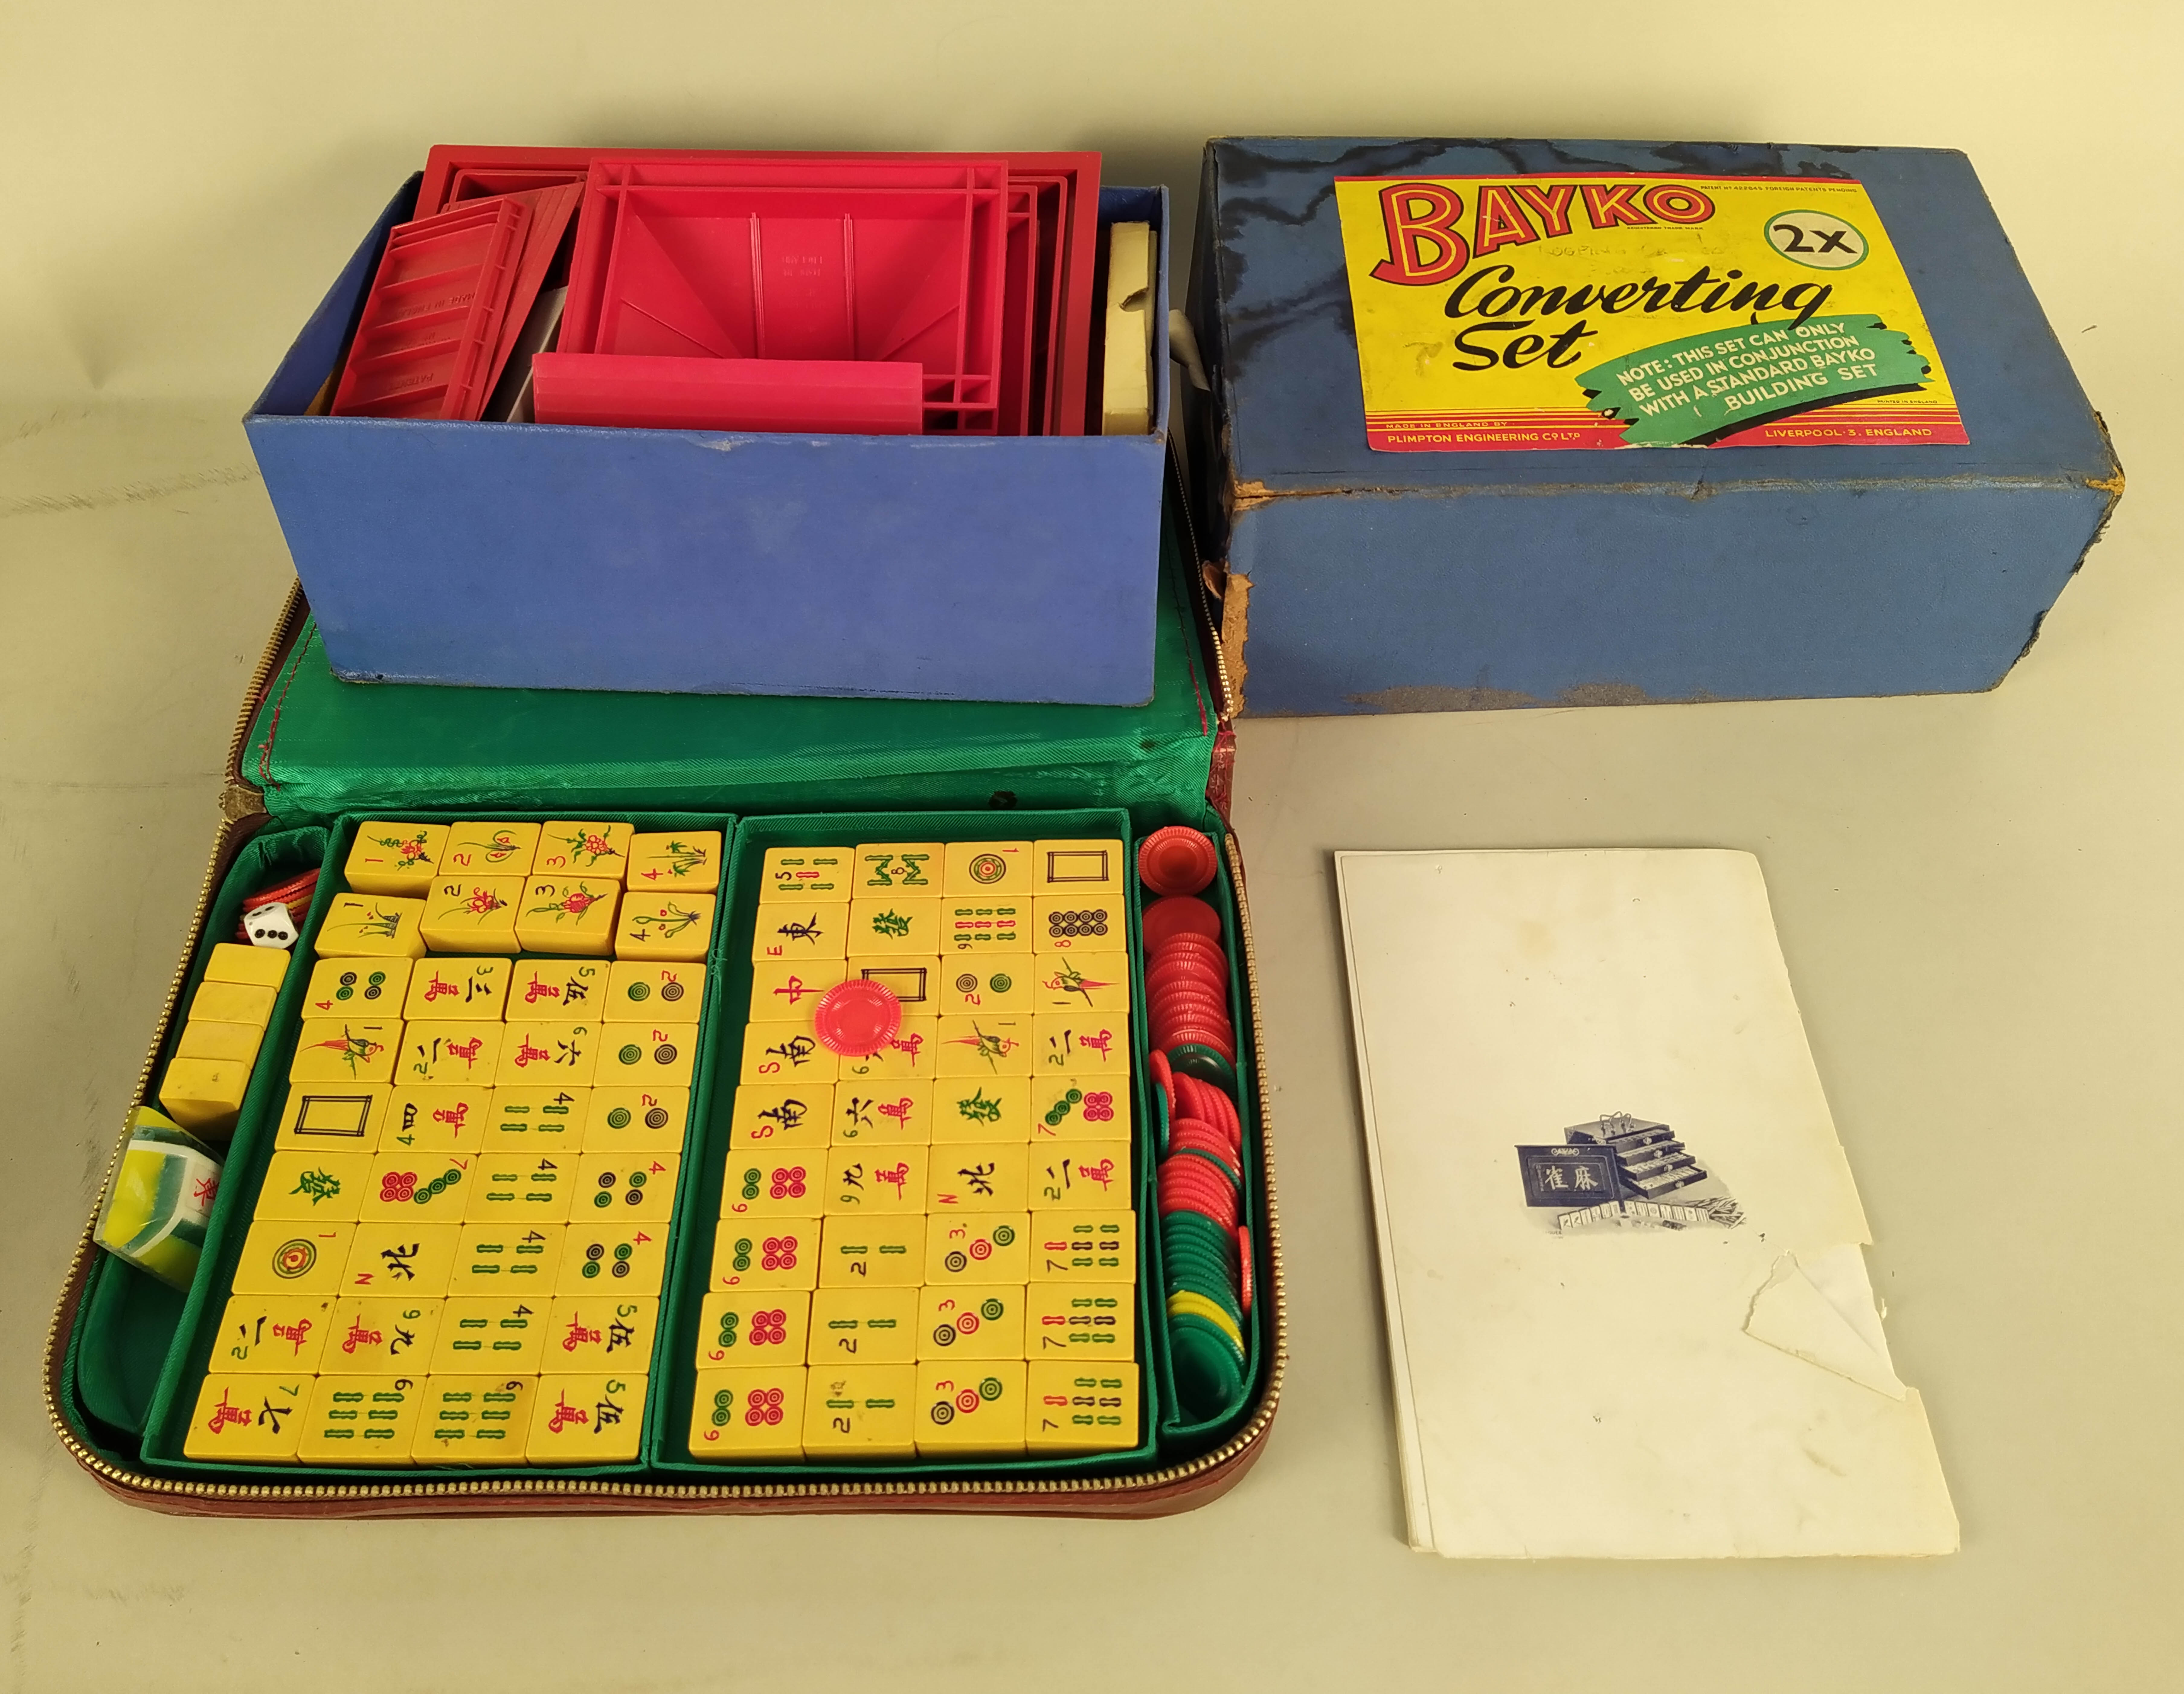 A vintage Totopoly game with board and two boxes of vintage 'Bayko' building sets plus a Mahjong